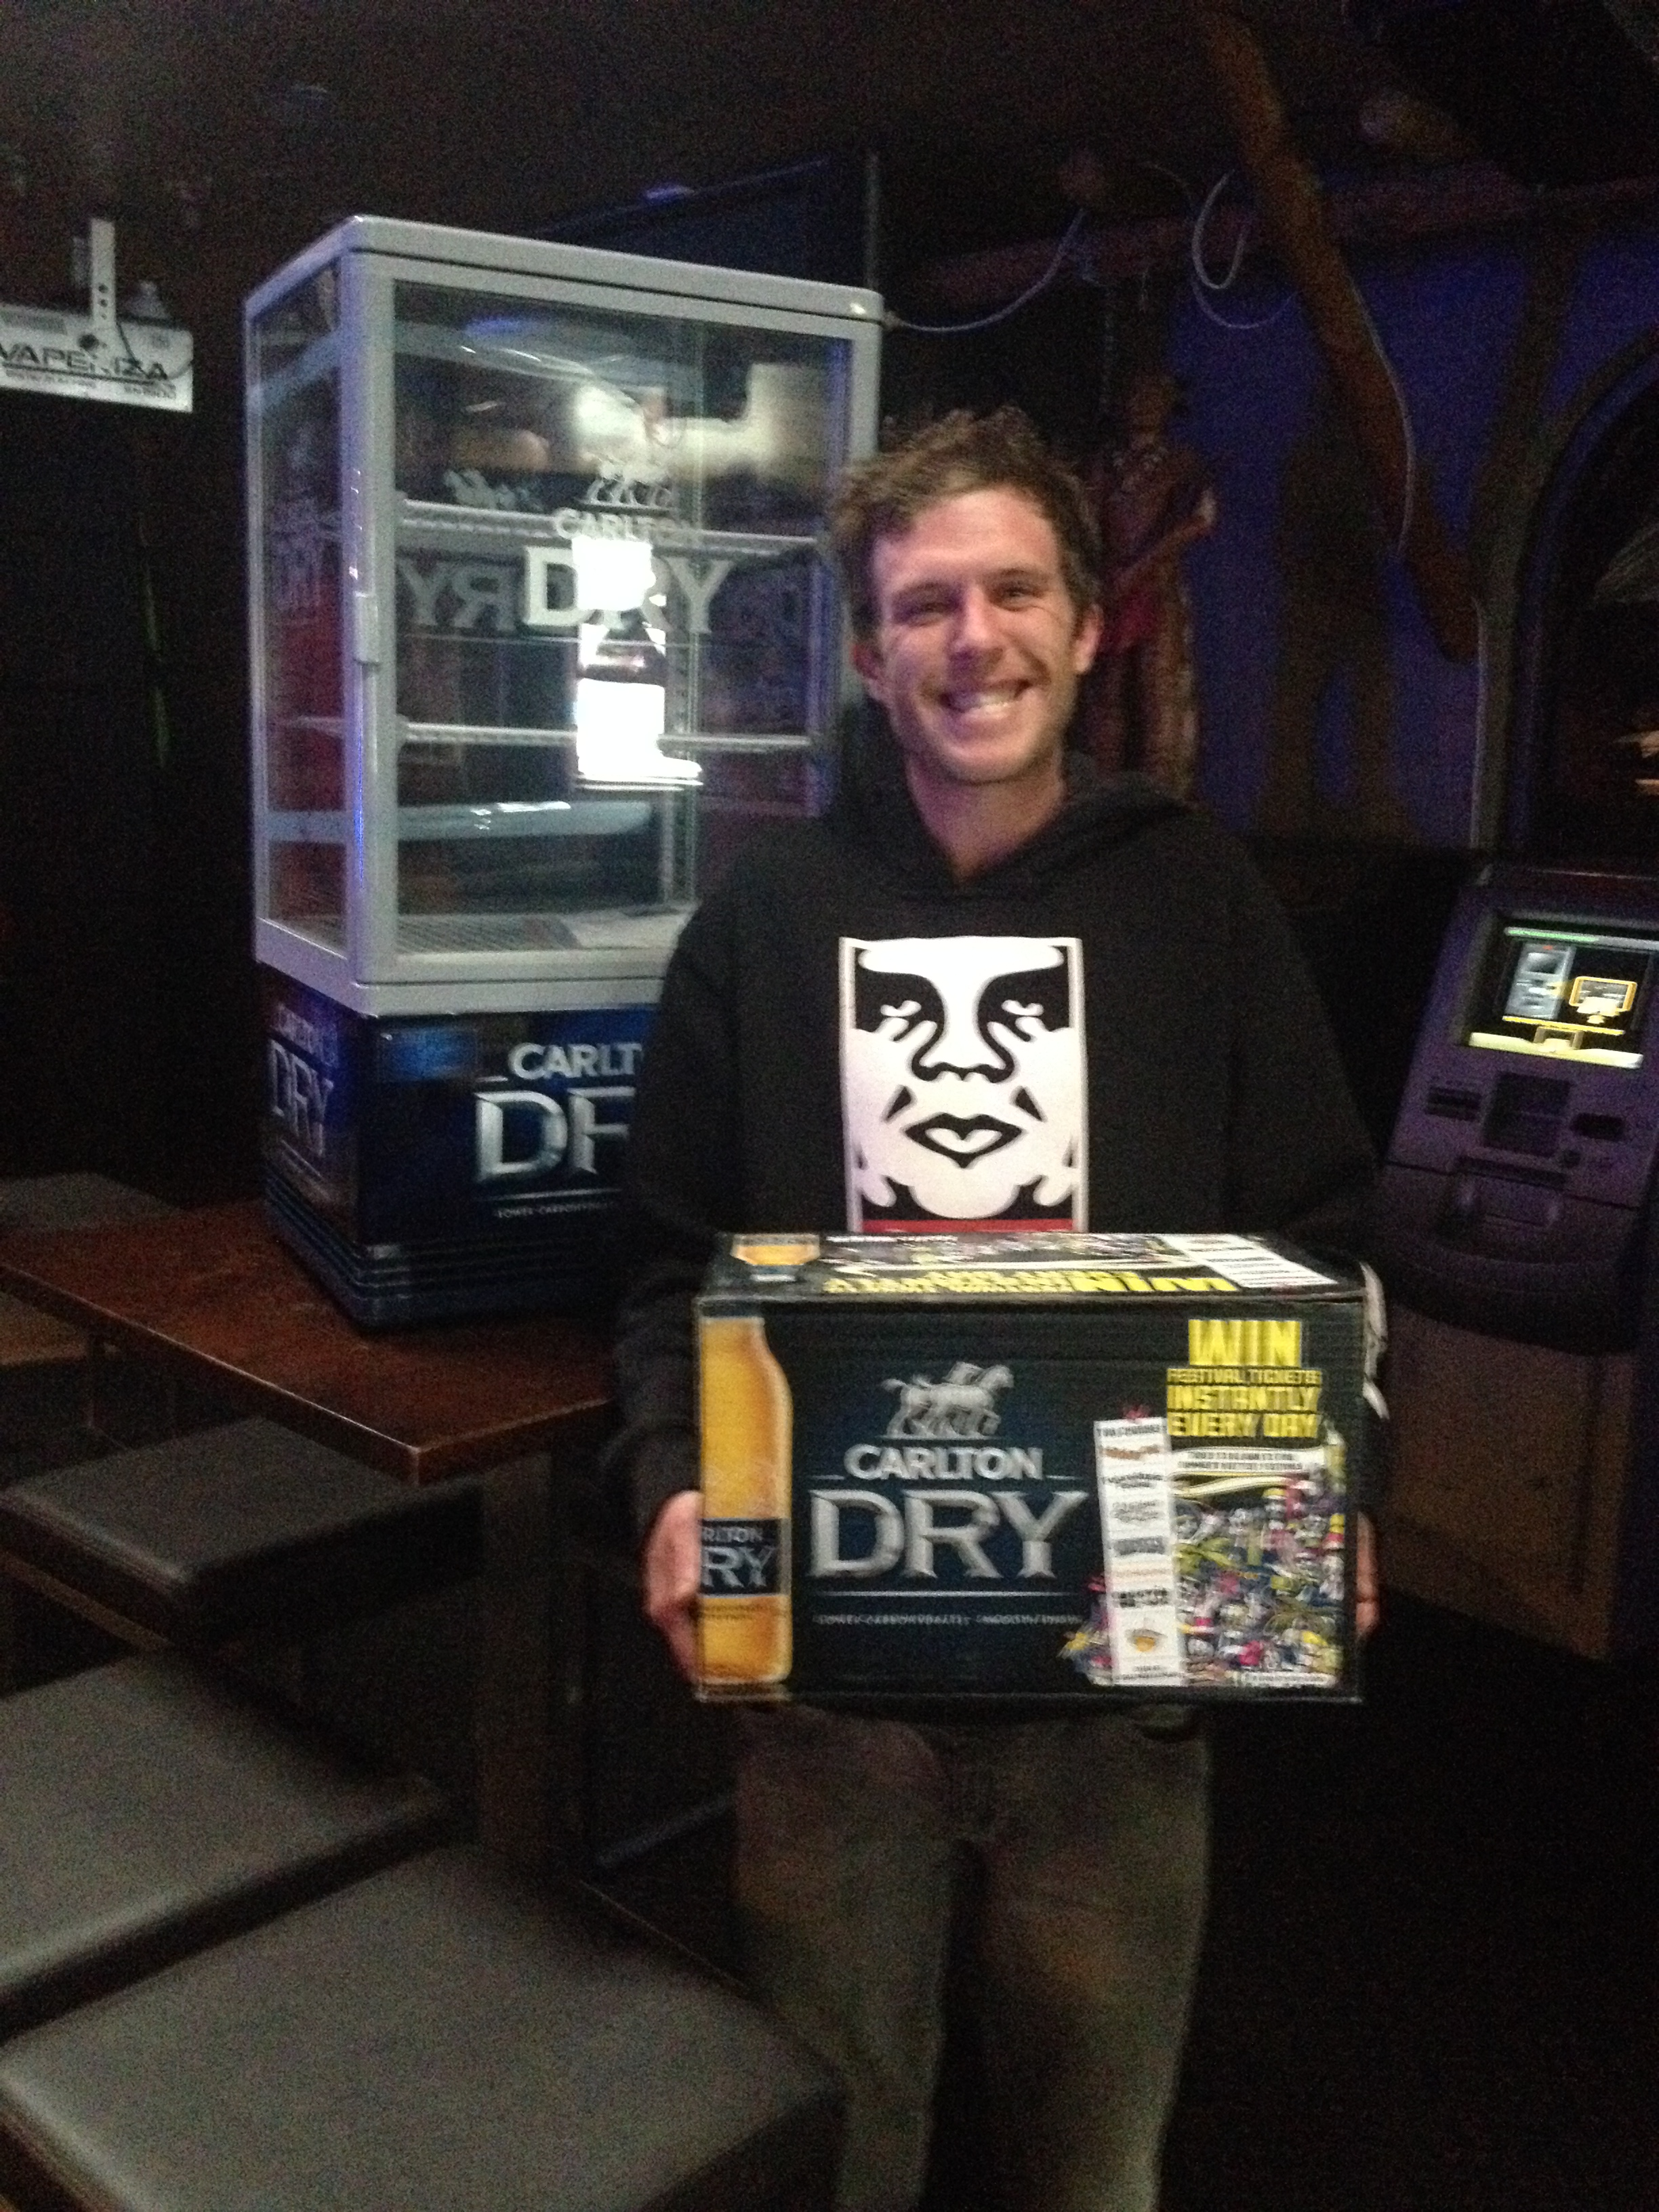 Winner of Carlton Dry Fridge